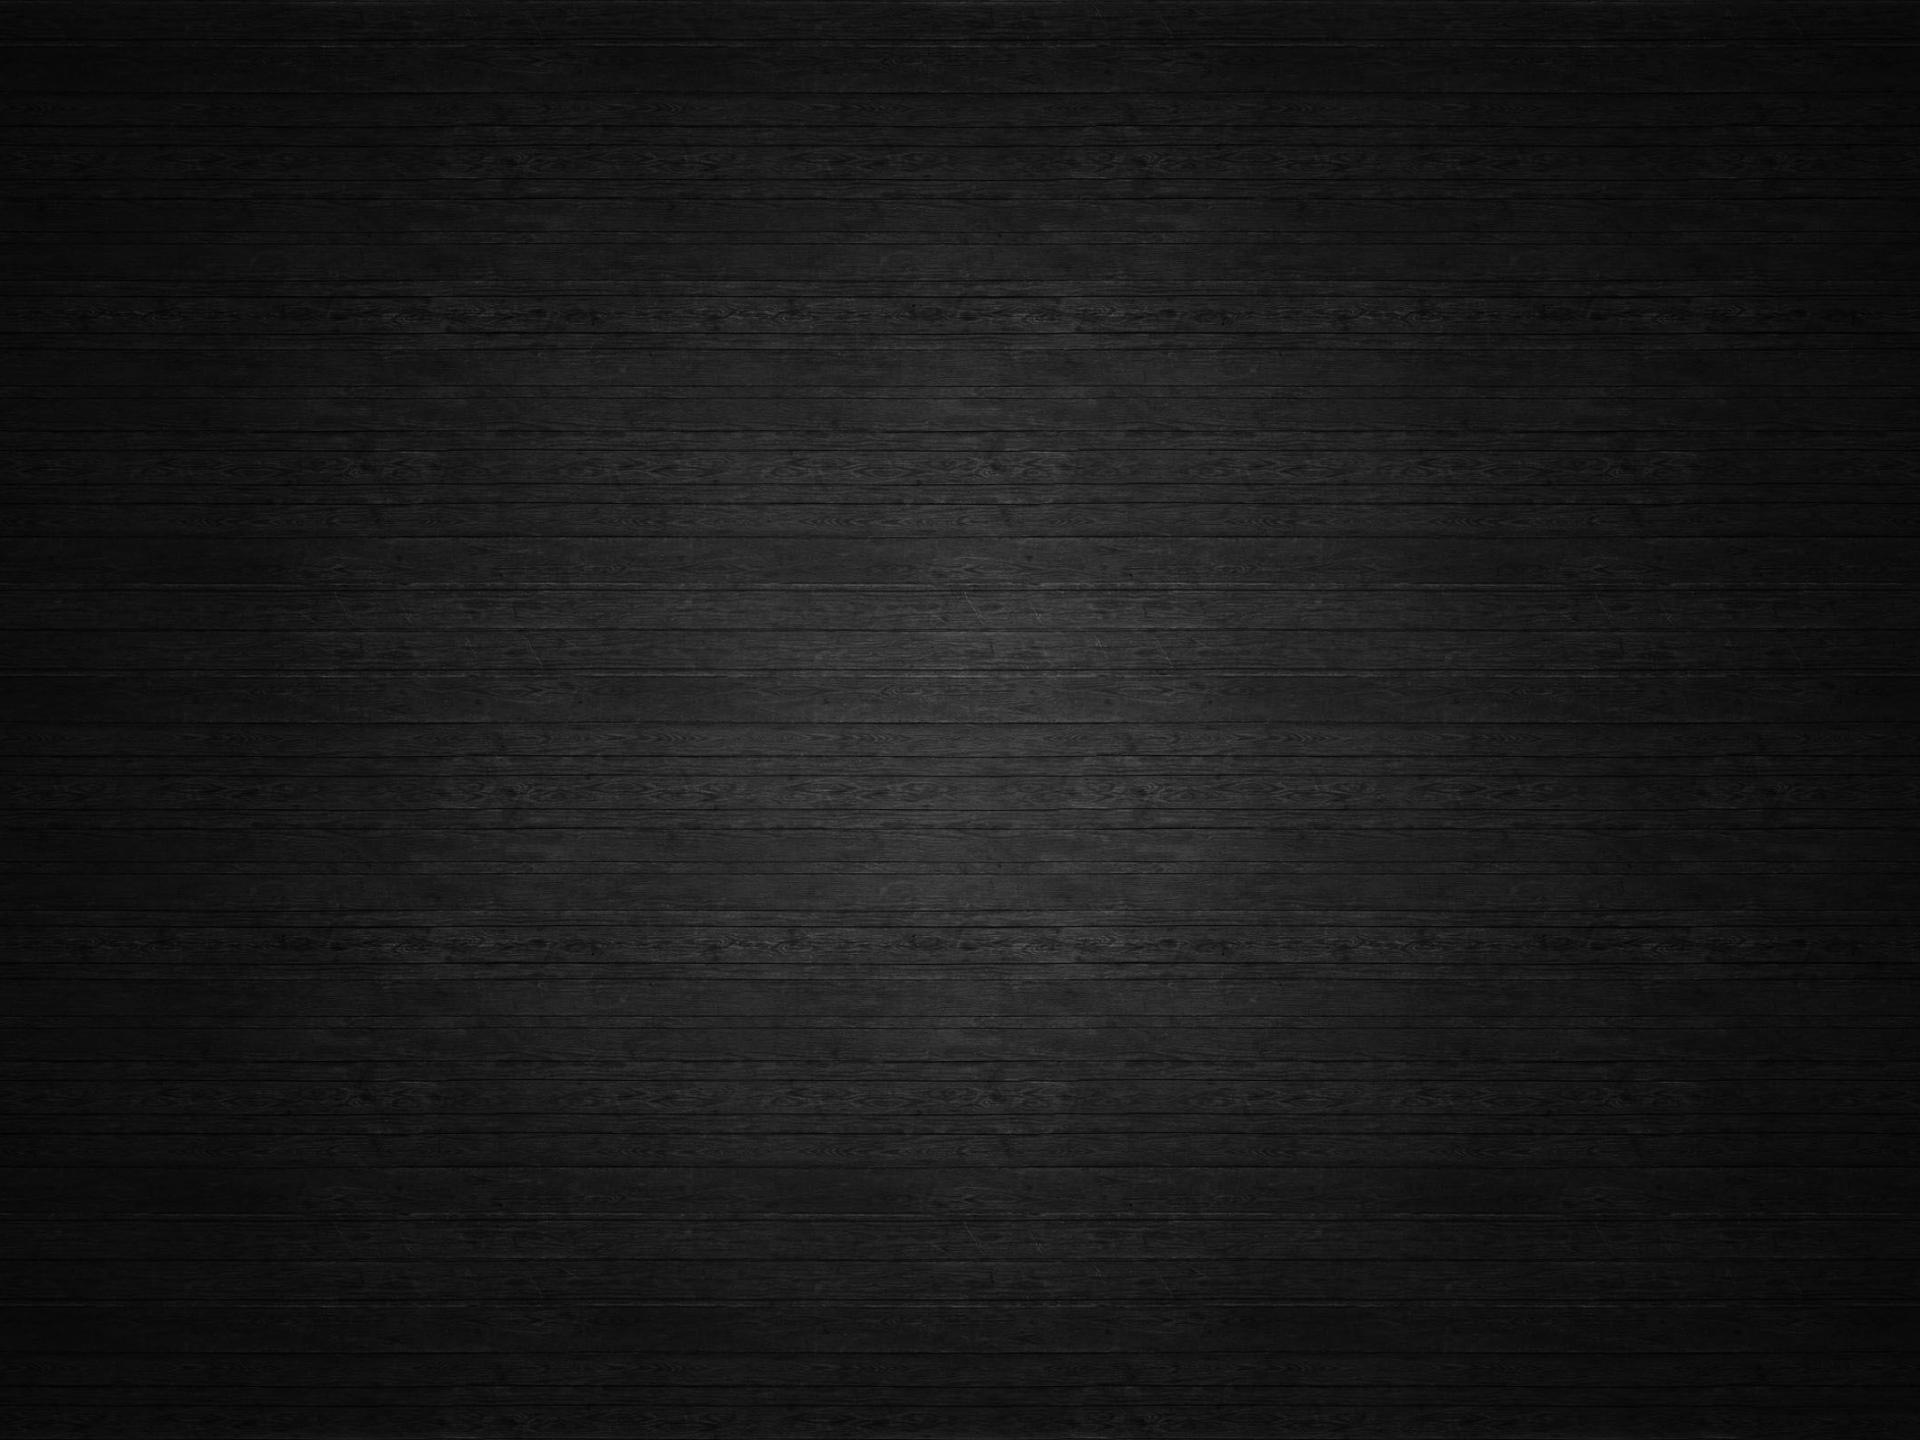 abstract-black_background_wood_01-backgrounds-wallpapers.jpg